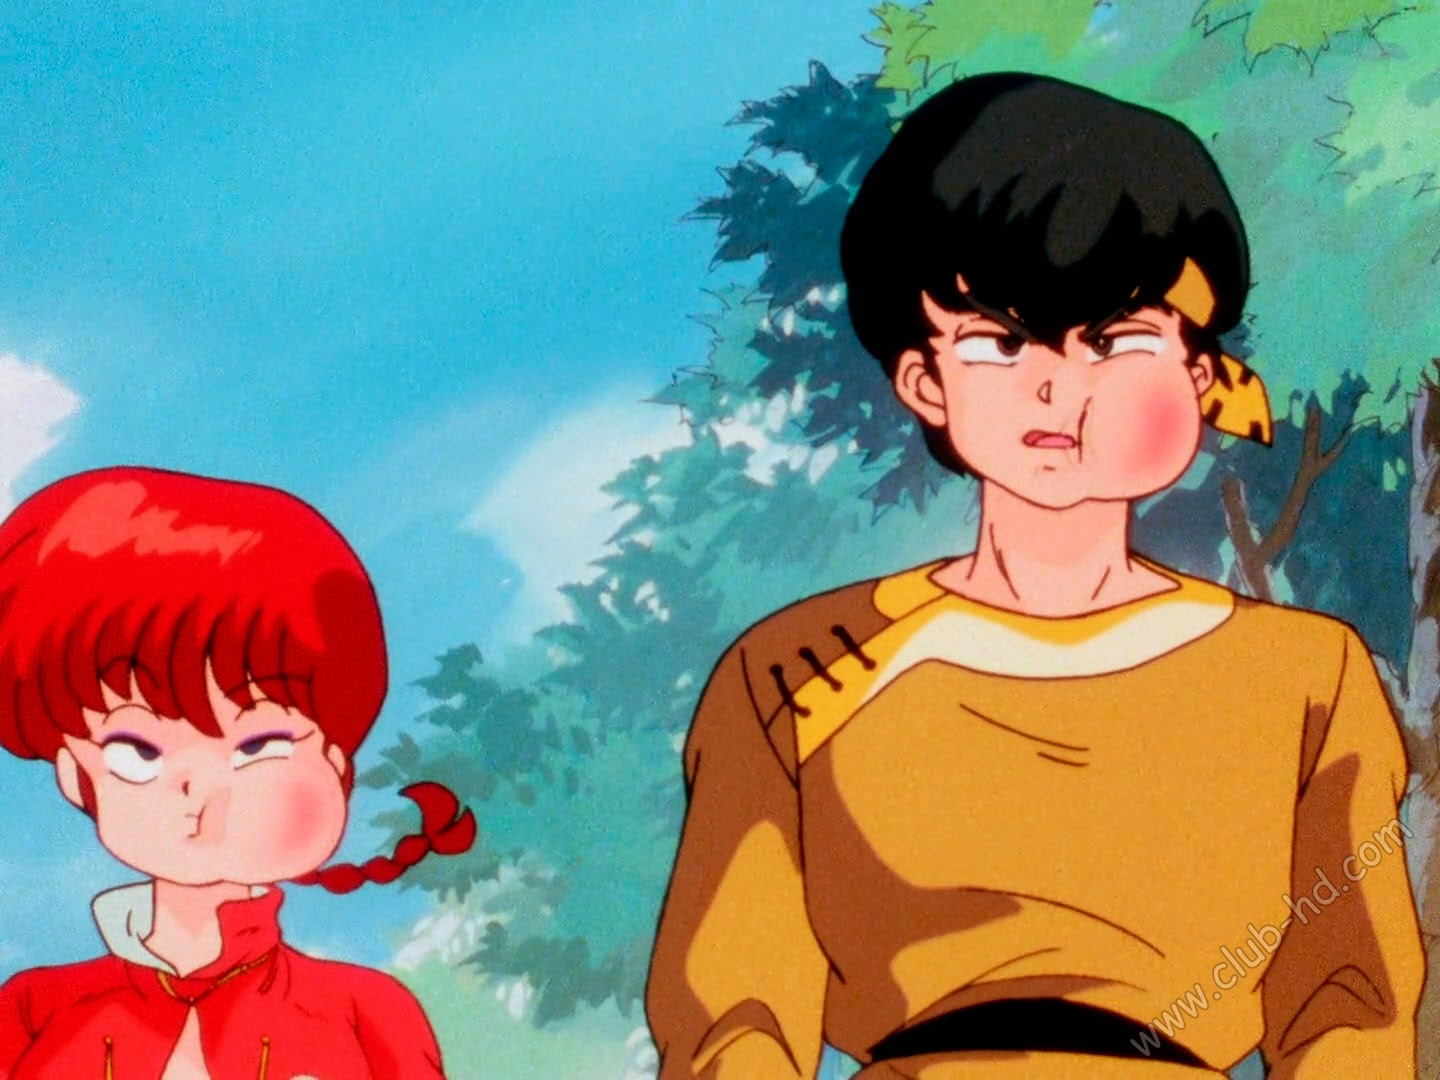 Ranma 1/2 capitulo 027 completo latino dating